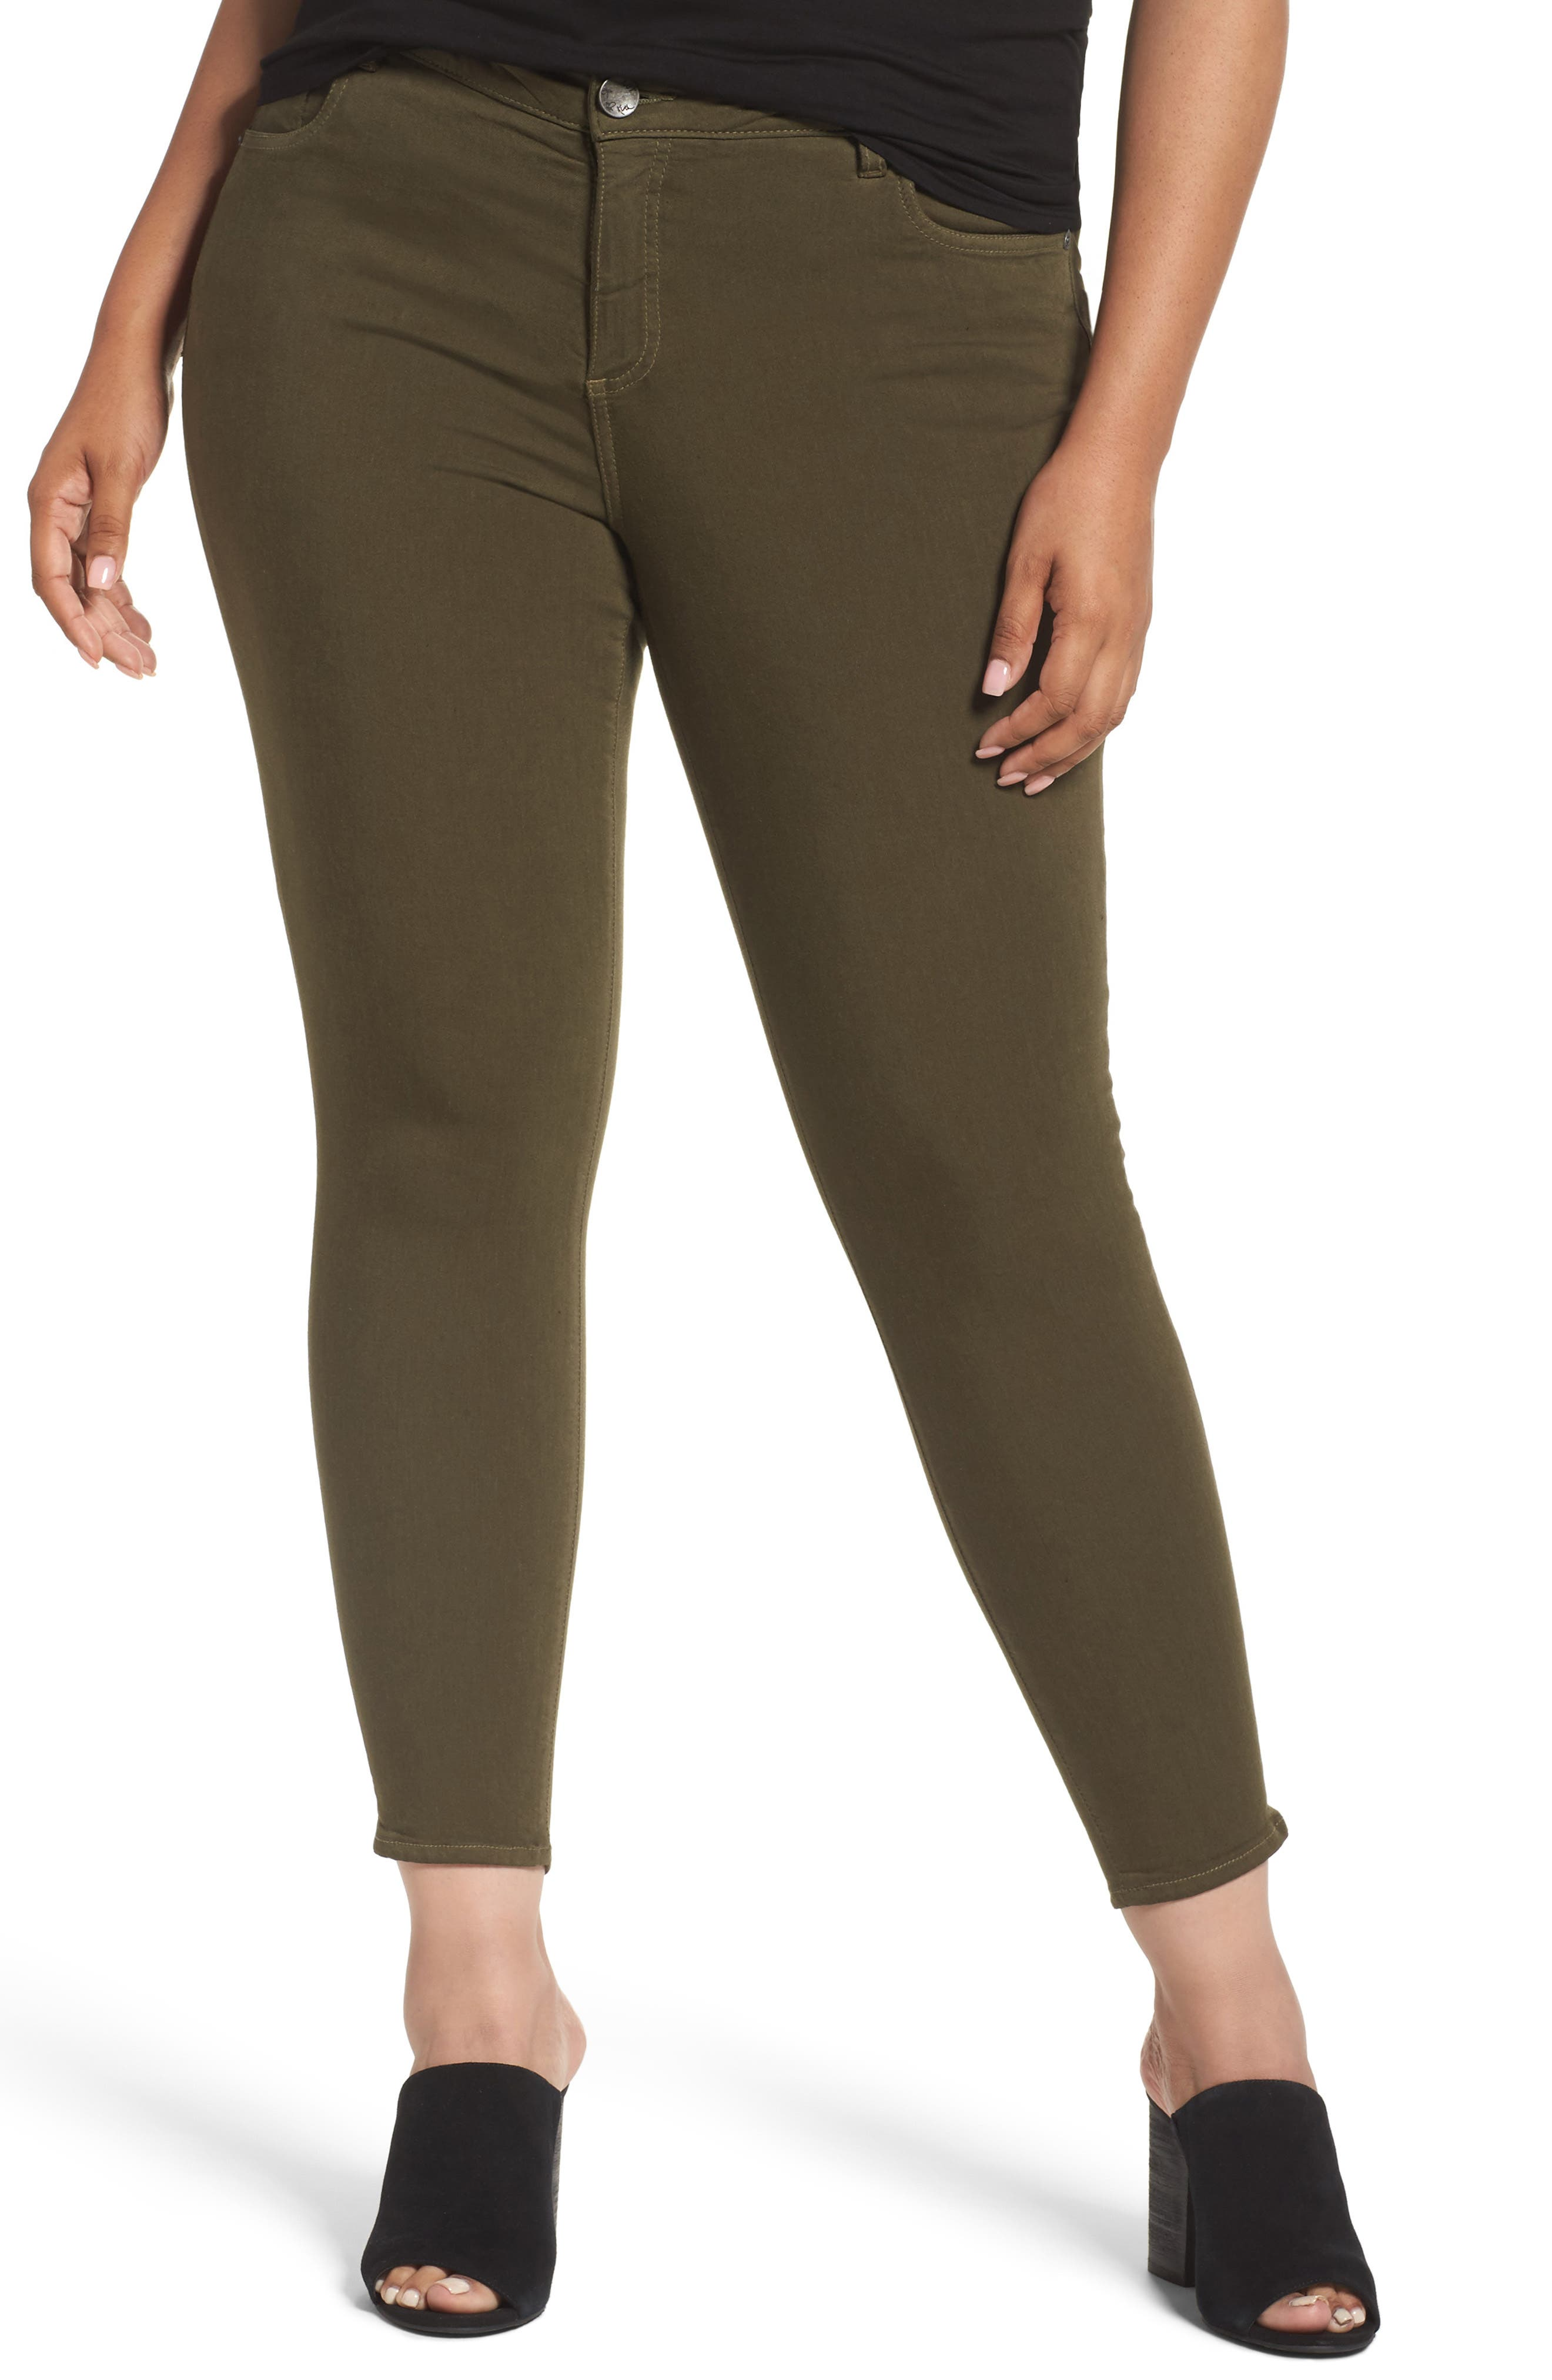 KUT from the Kloth Donna Colored Stretch Skinny Jeans (Plus Size)